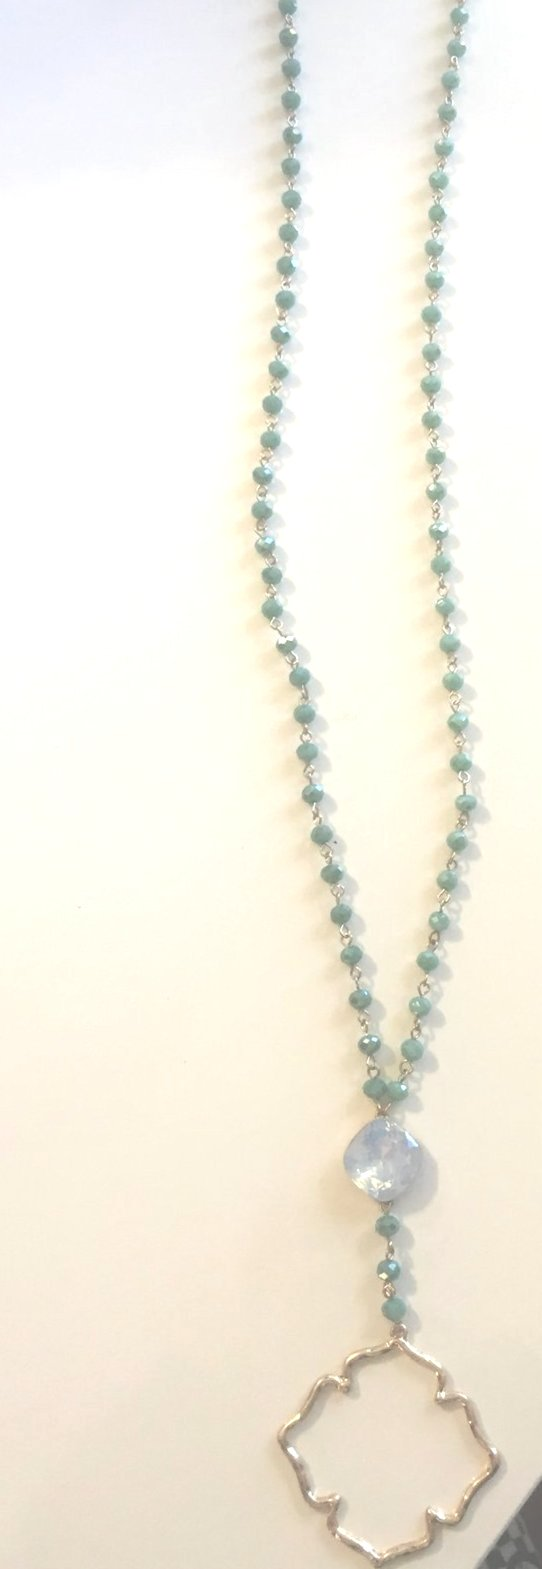 Quatrefoil Bead Necklace - Shop House Market